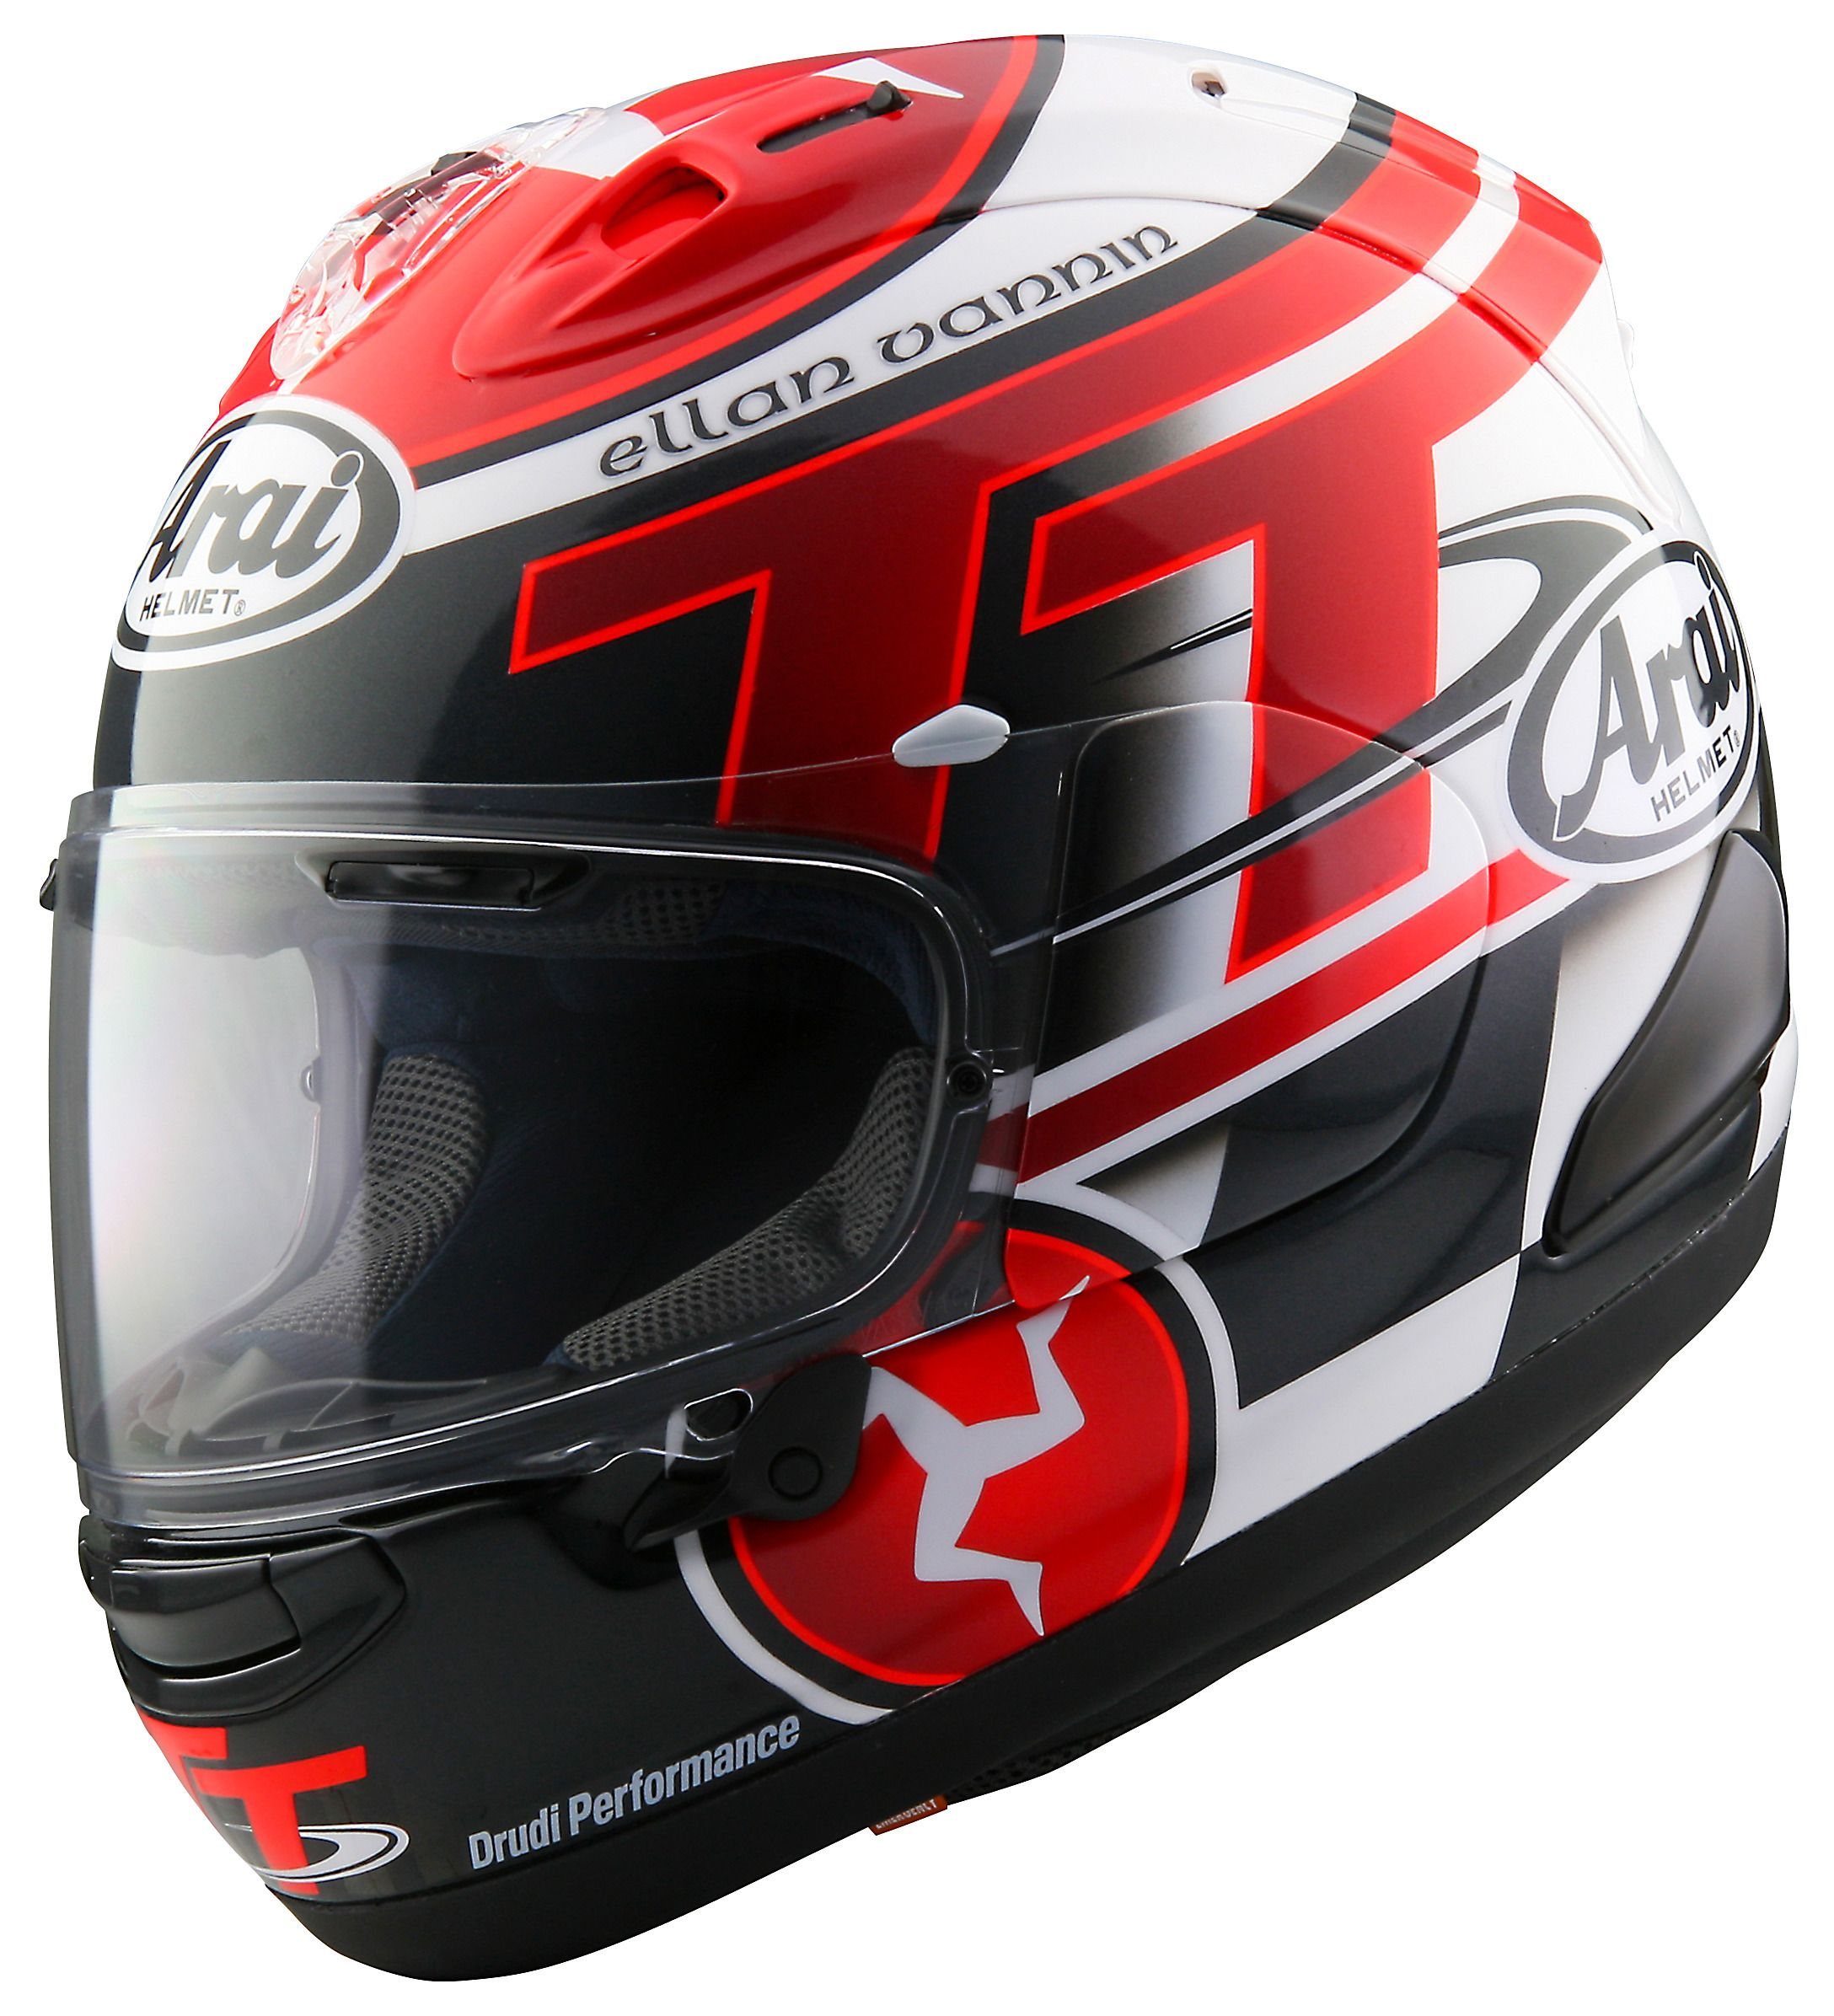 arai corsair x iom tt 2016 le helmet revzilla. Black Bedroom Furniture Sets. Home Design Ideas